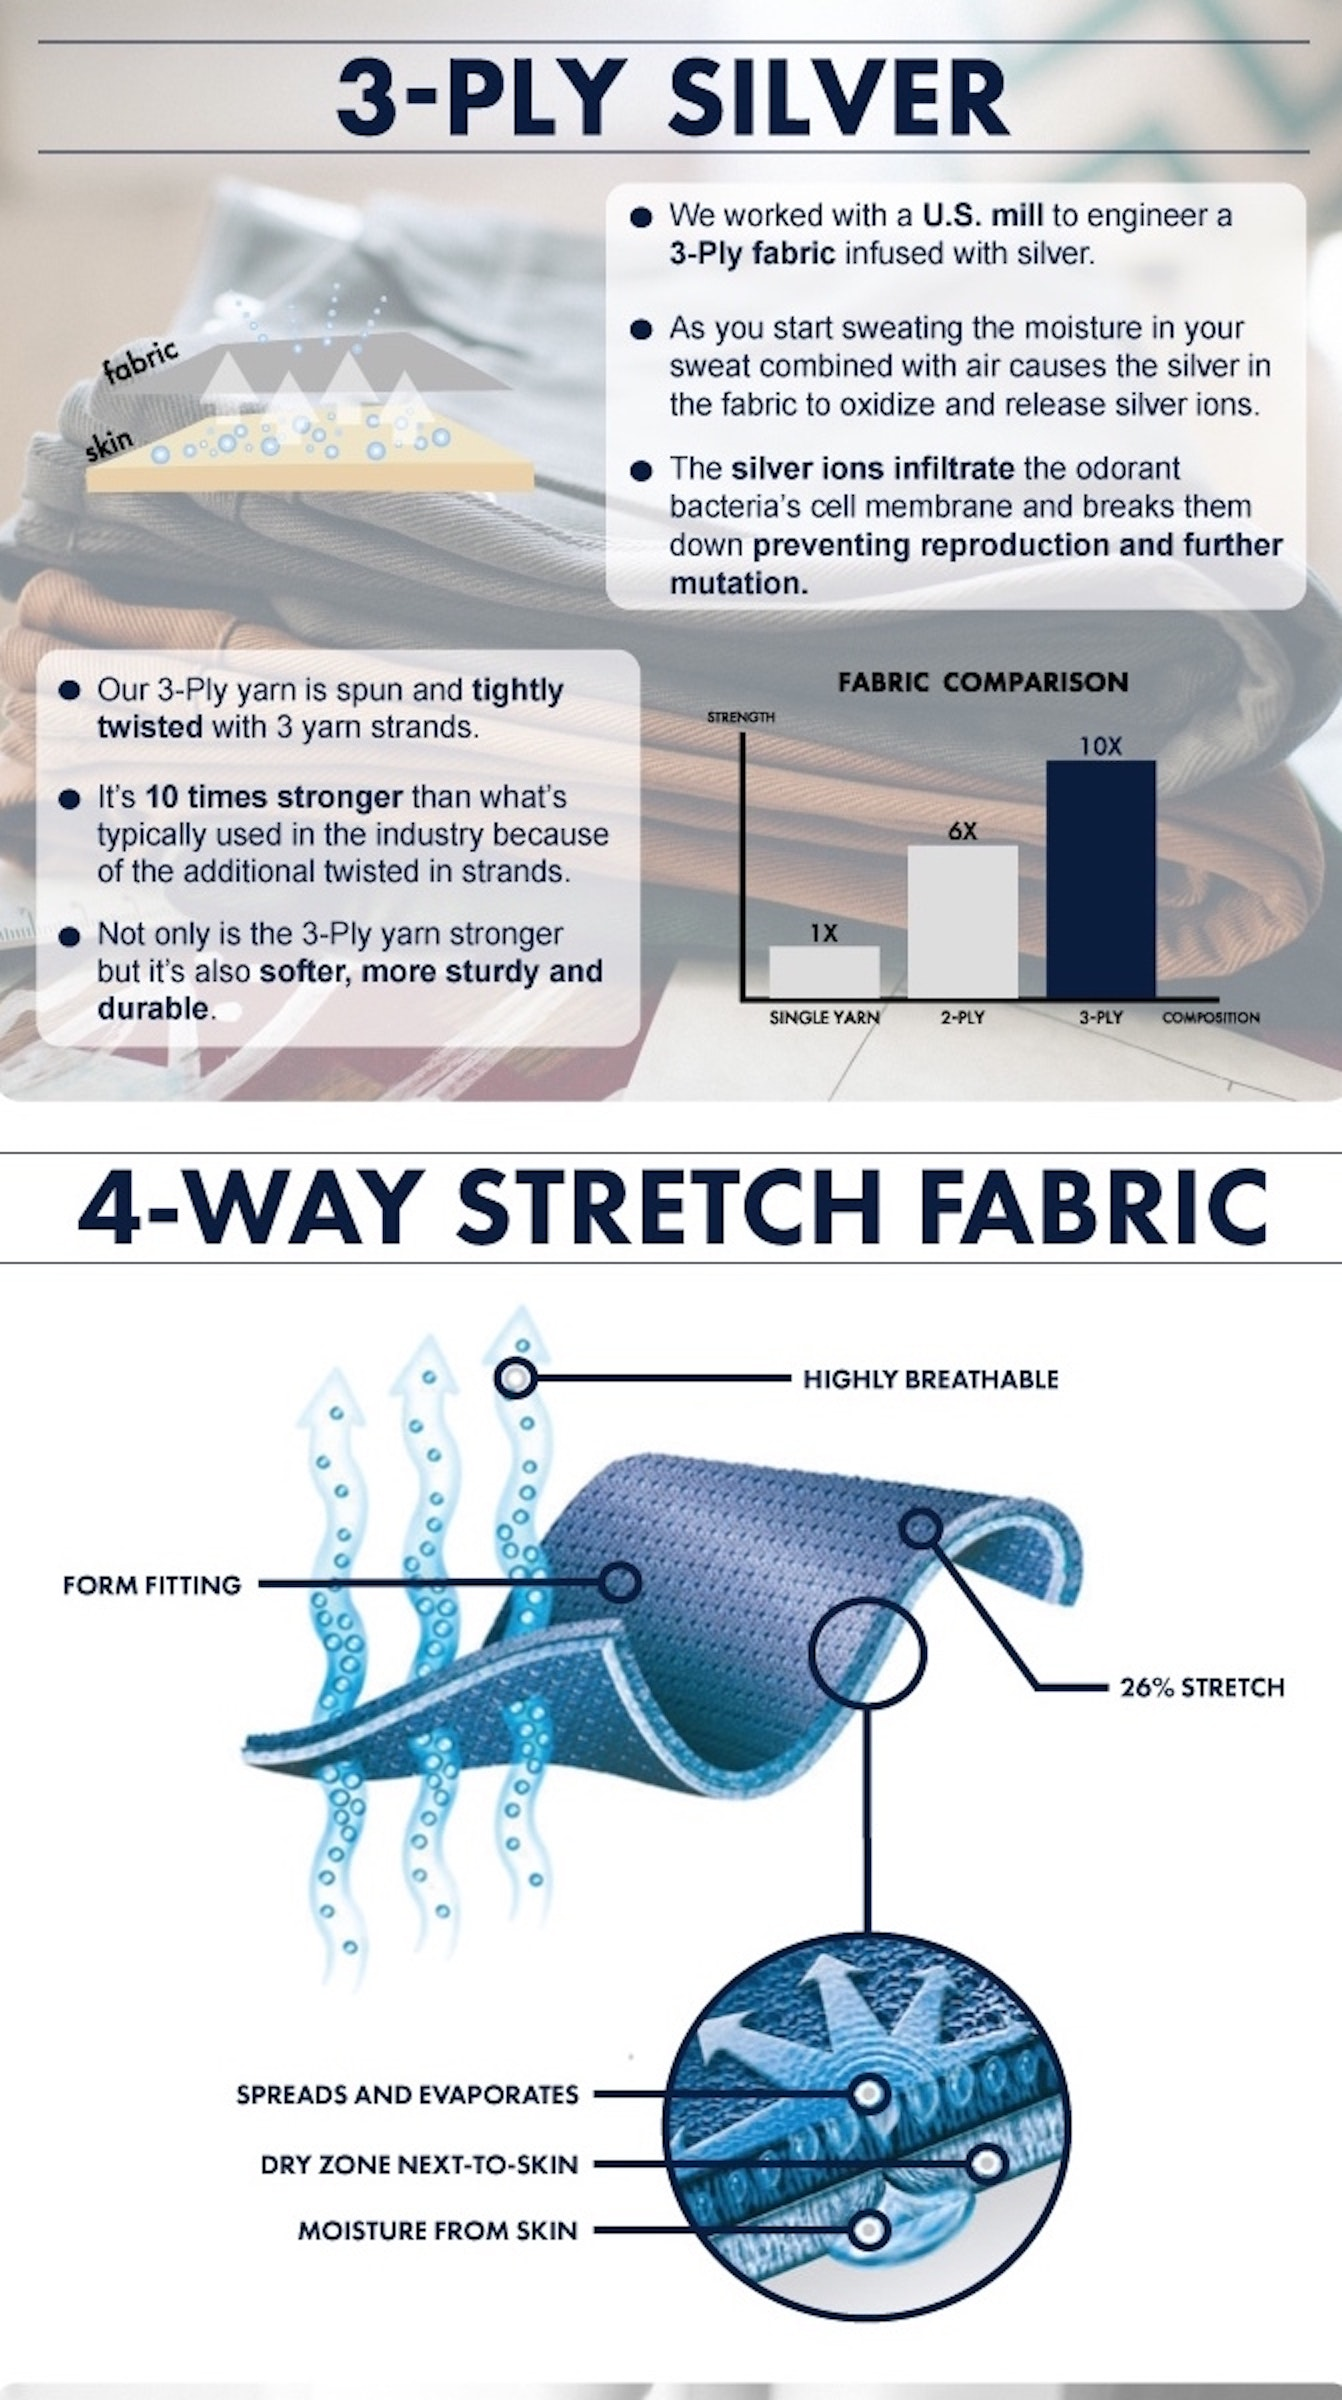 The silver-infused fabric repels odor and strengthens the pants